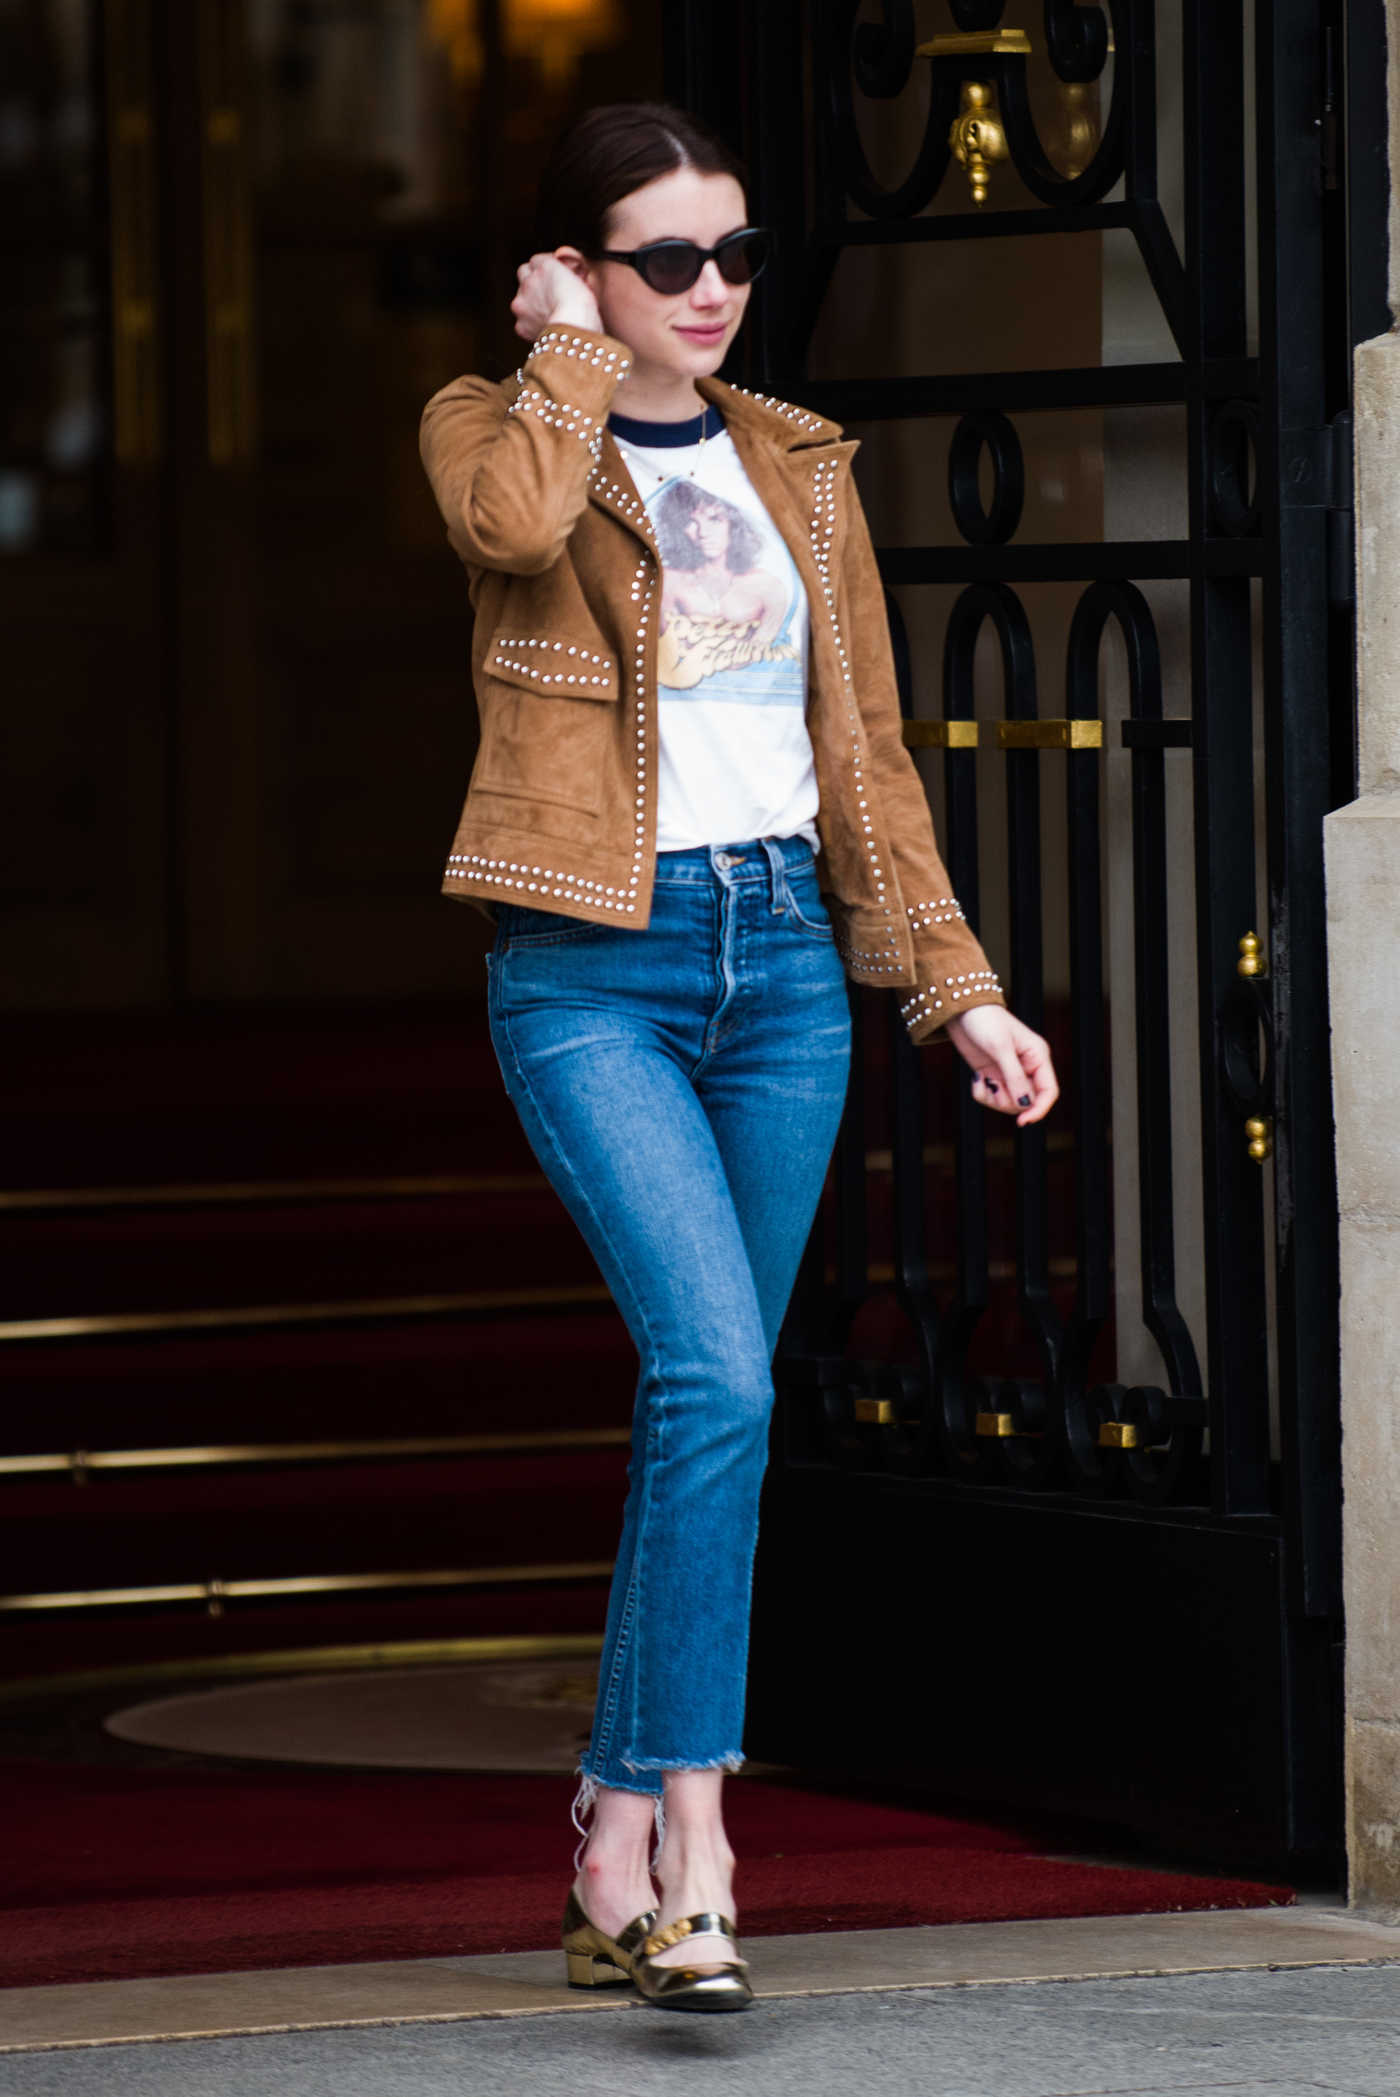 Emma Roberts in a Beige Leather Jacket Leaves Ritz Hotel in Paris 03/06/2019